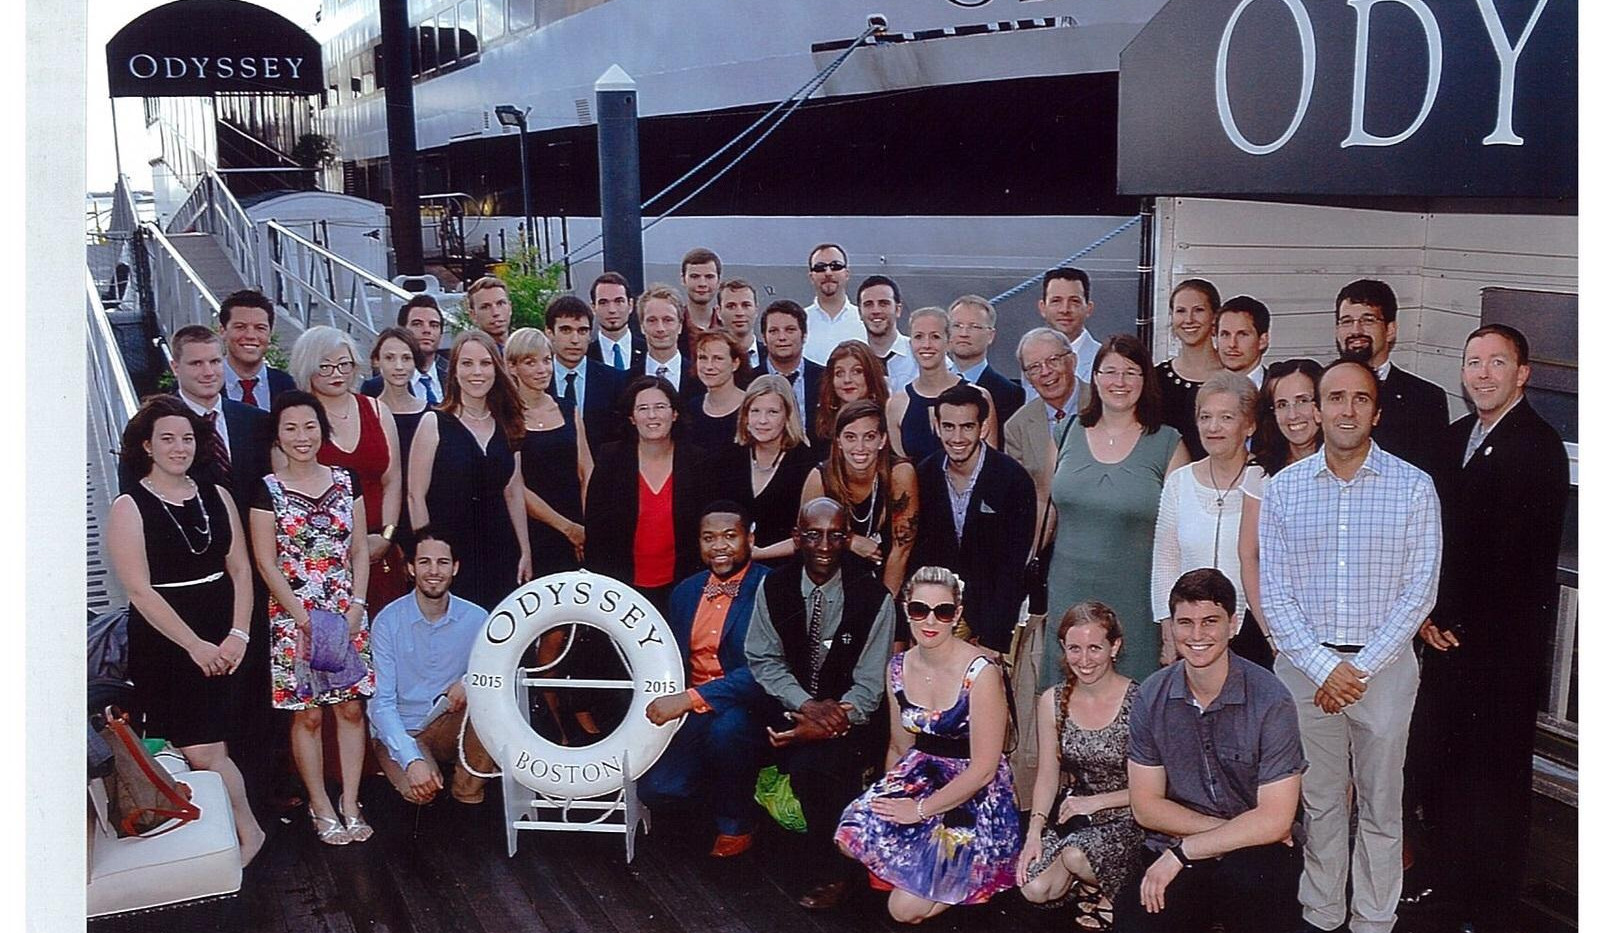 IYCN at the Odyssey cruise, 2015